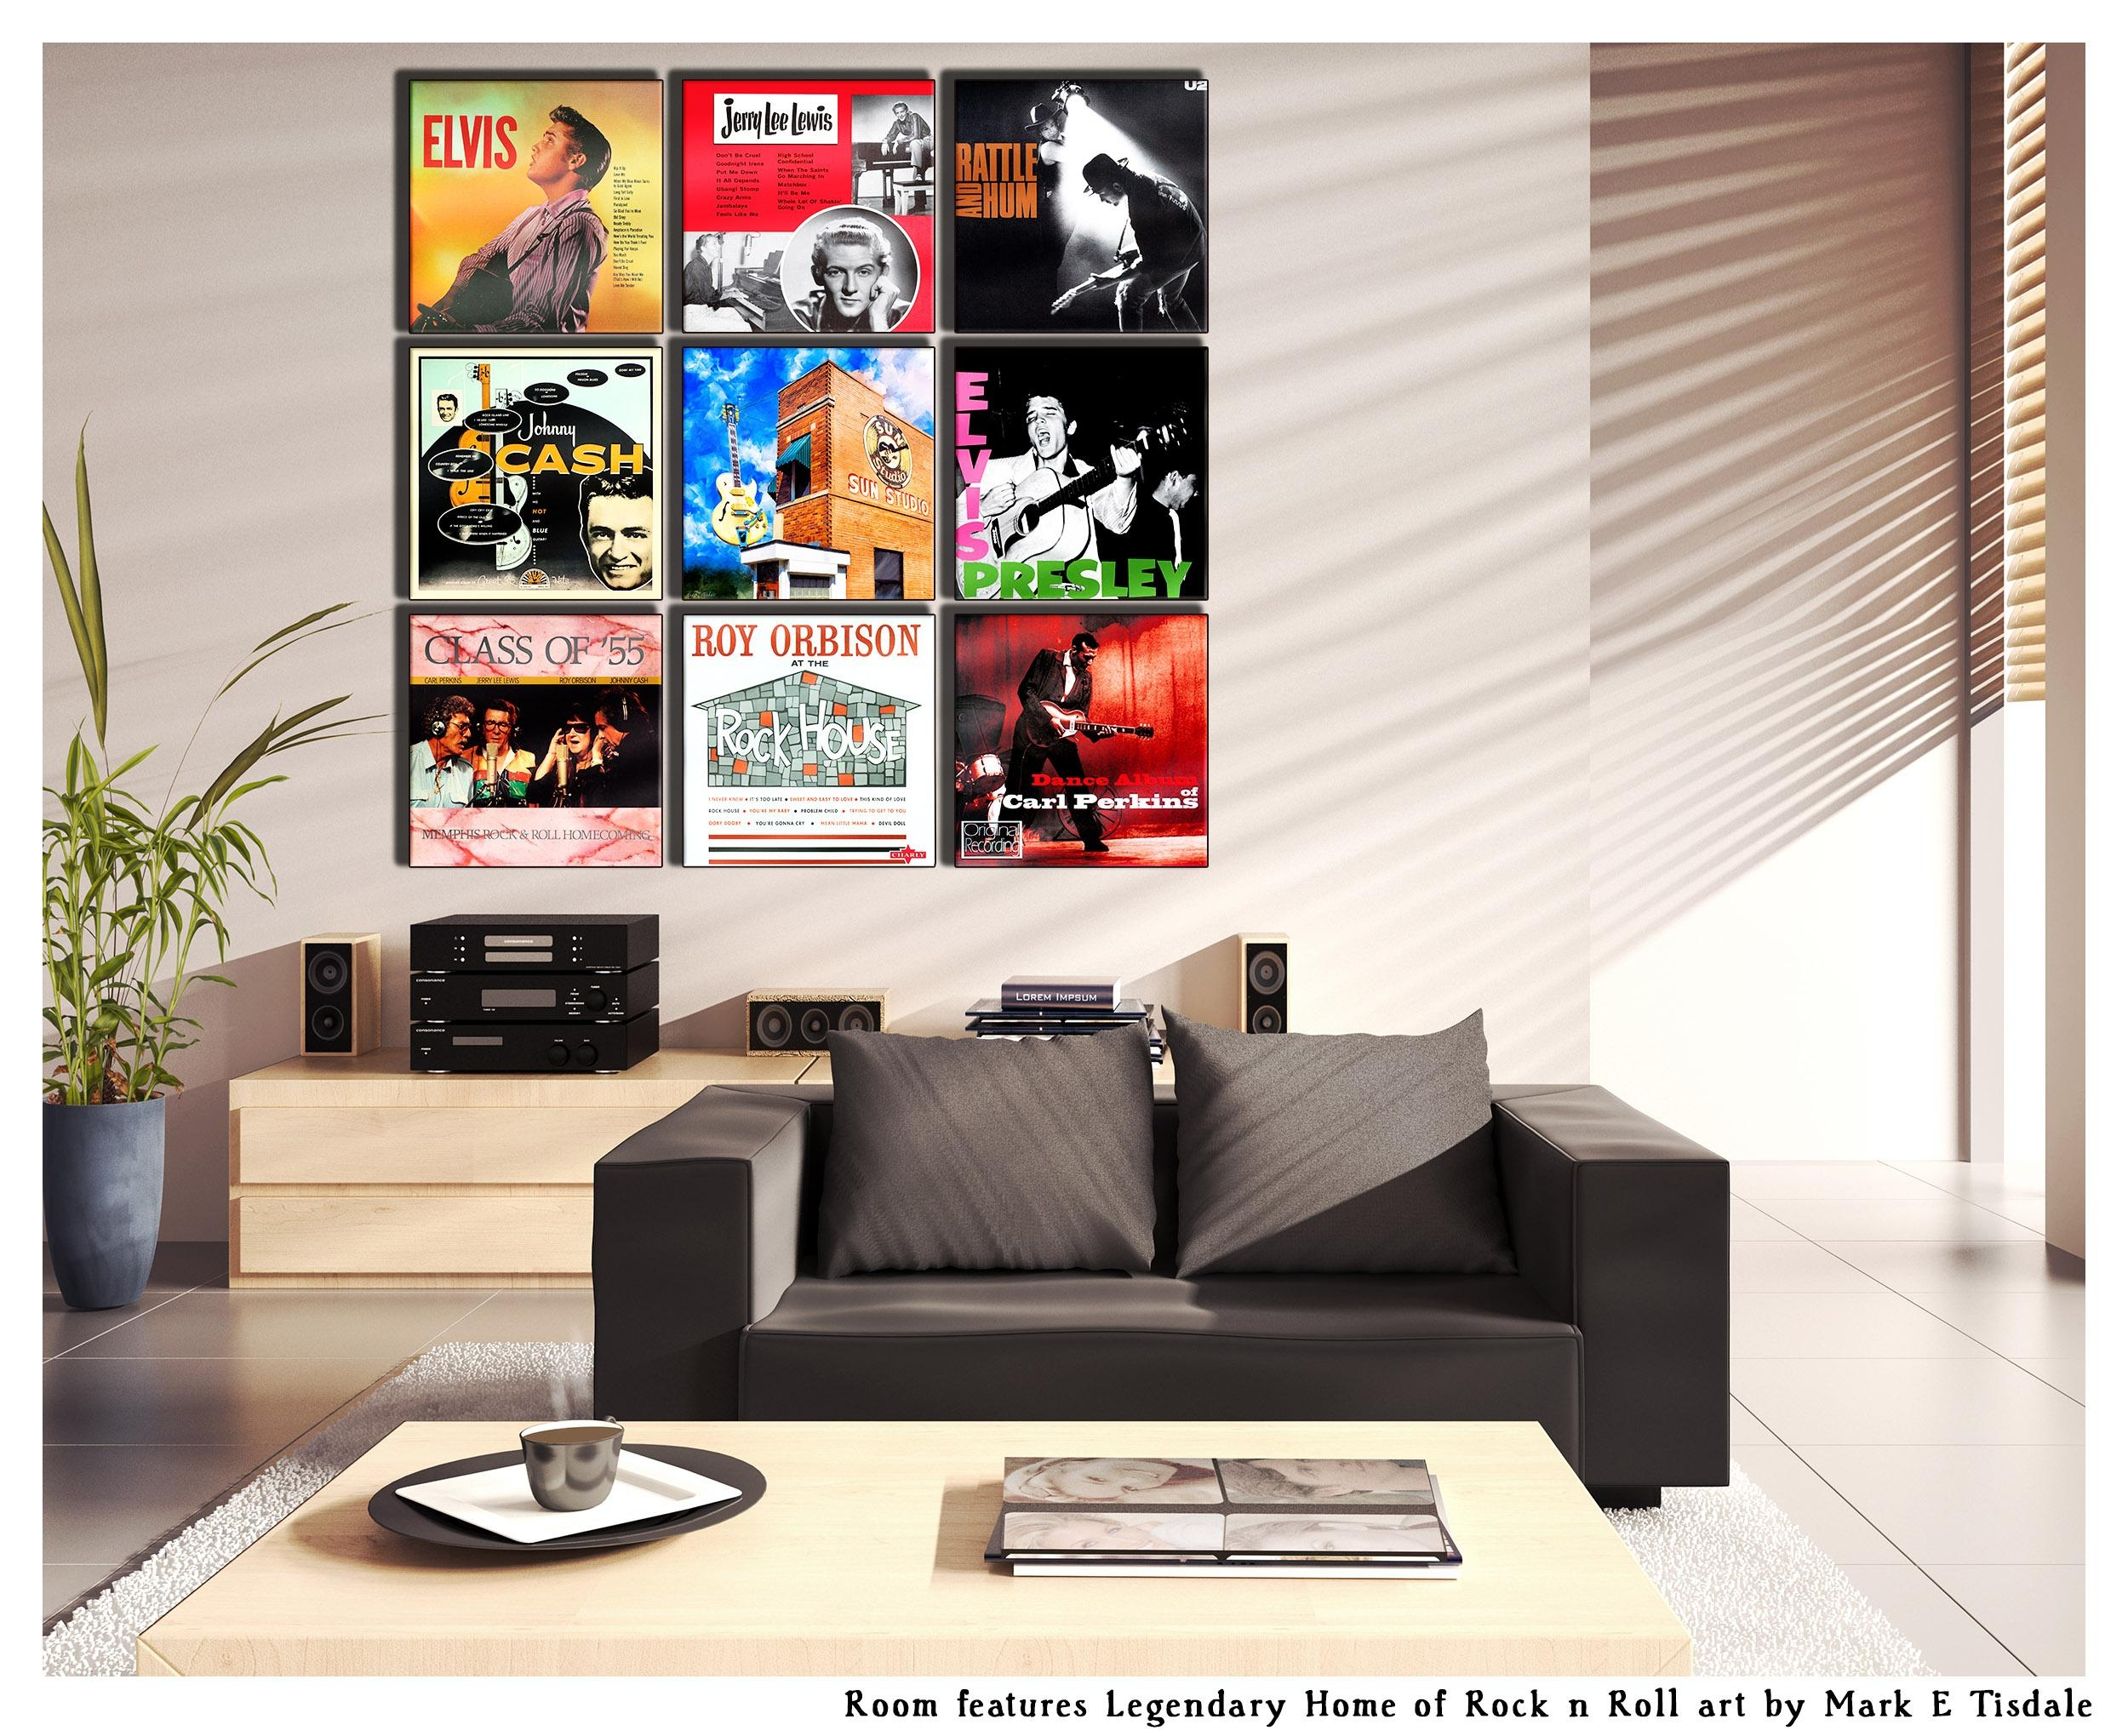 Album Cover Wall Art Display Ideas – Grouping With Art – Mark On Art With Regard To Album Cover Wall Art (View 2 of 20)